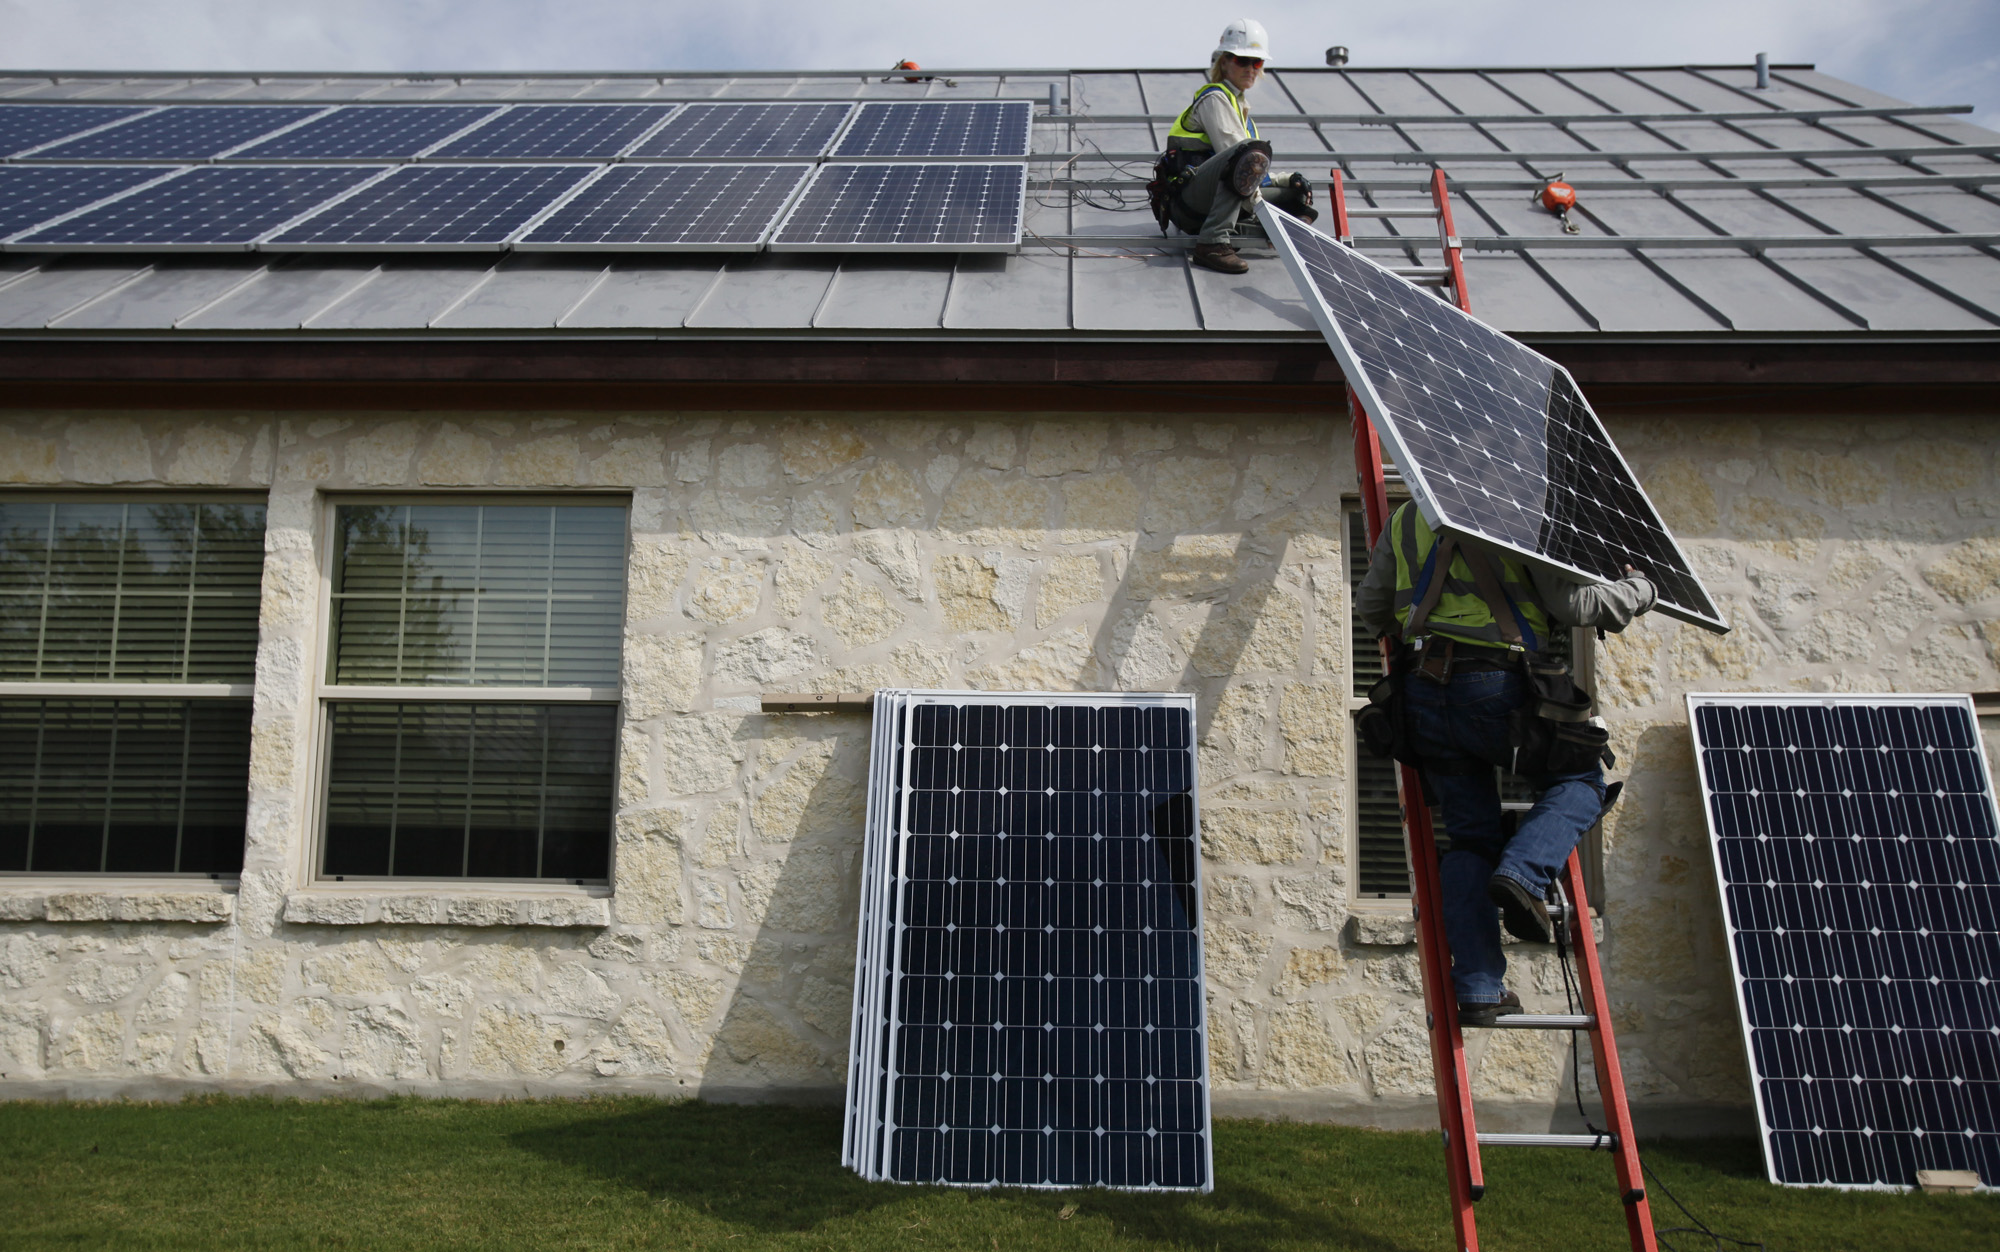 Residential Solar Use Up With Cps Rebate Tax Credit San